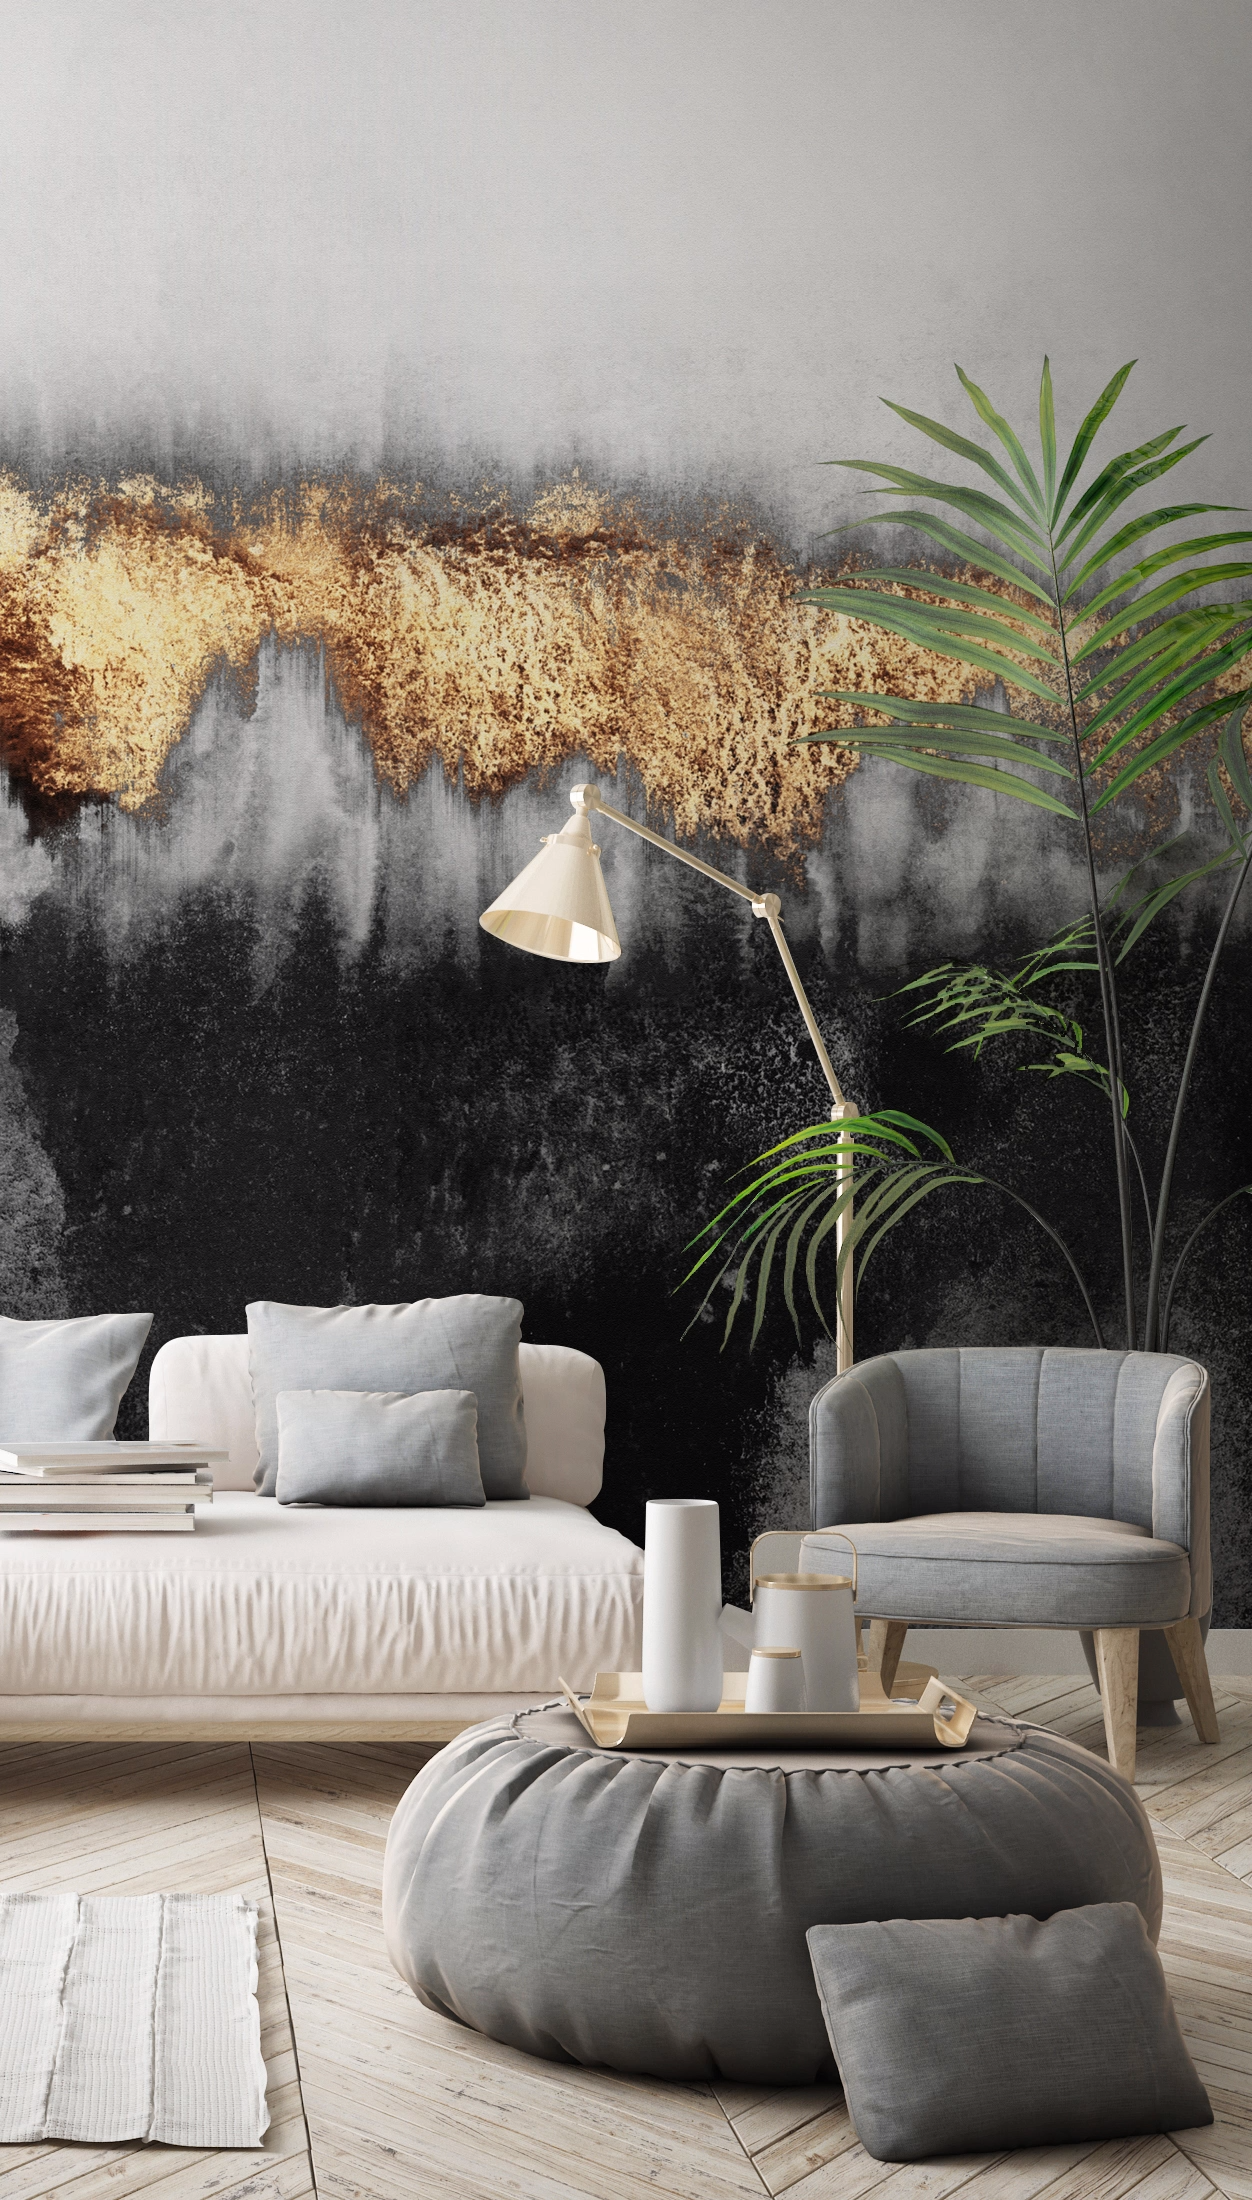 Give Your Room That Show Stopping Feature Wall With A Custom